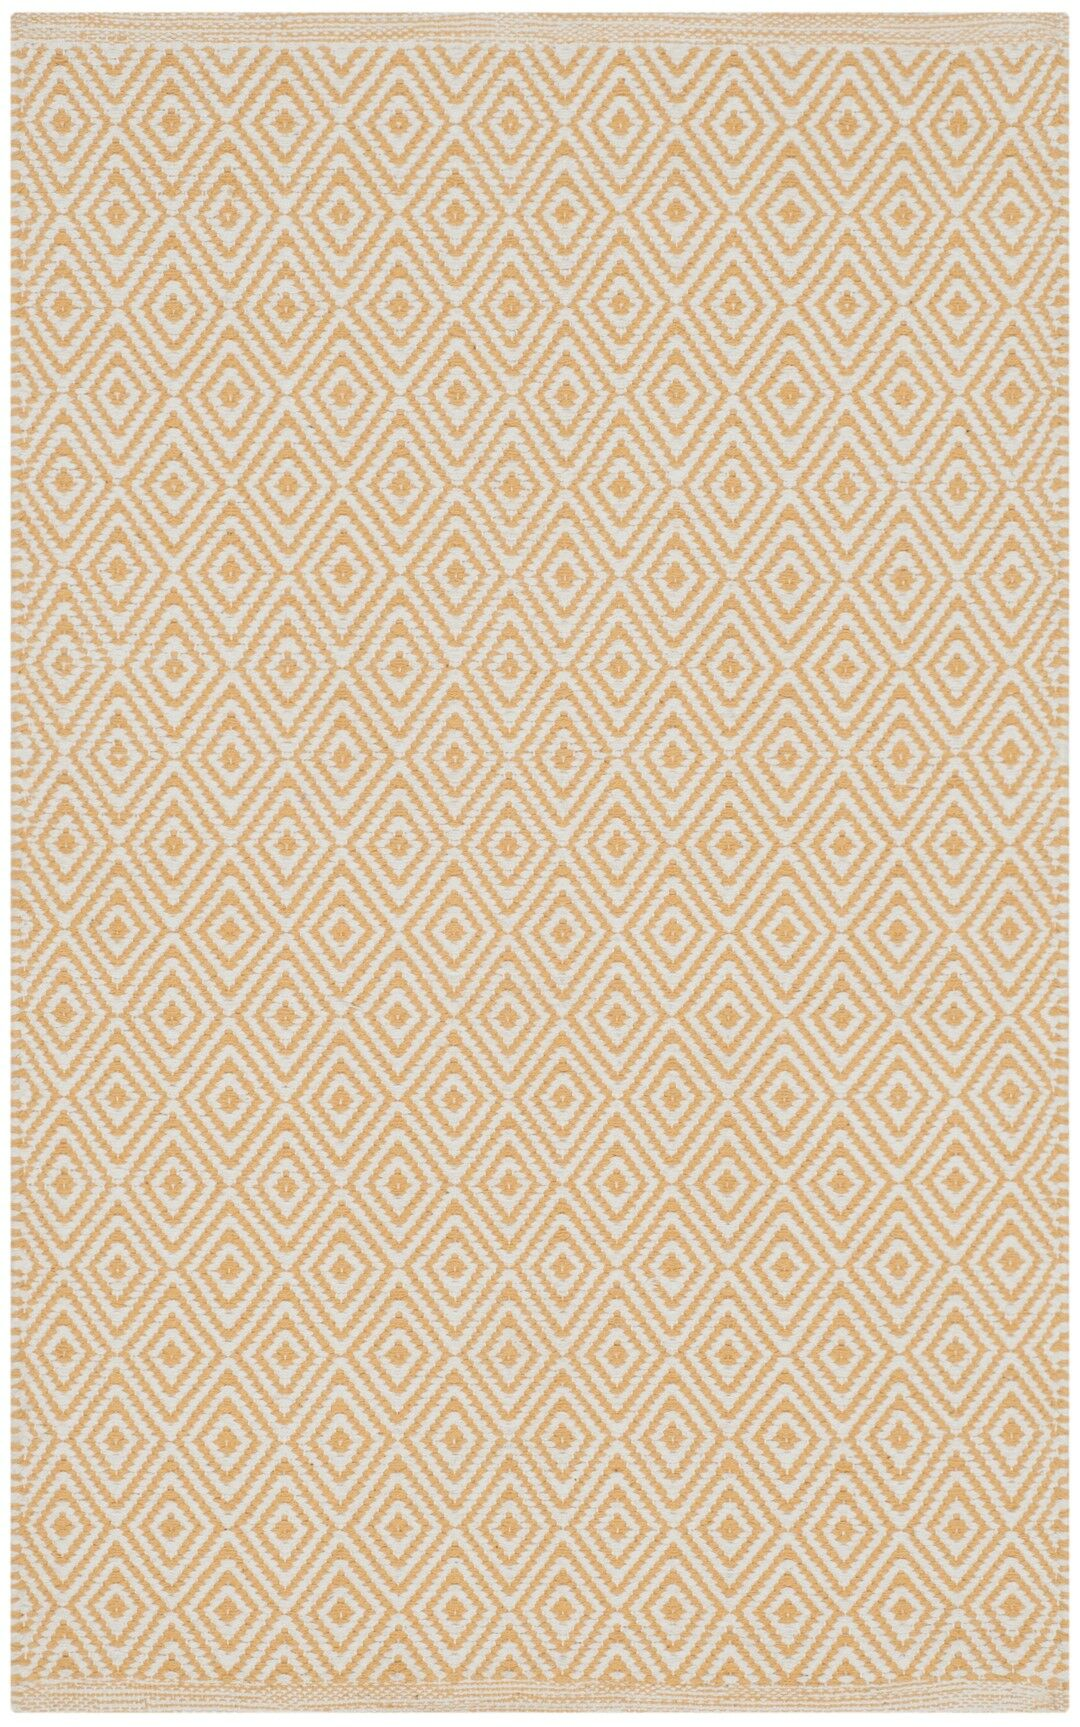 Shevchenko Place Hand-Woven Ivory/Gold Area Rug Rug Size: Rectangle 5' x 8'